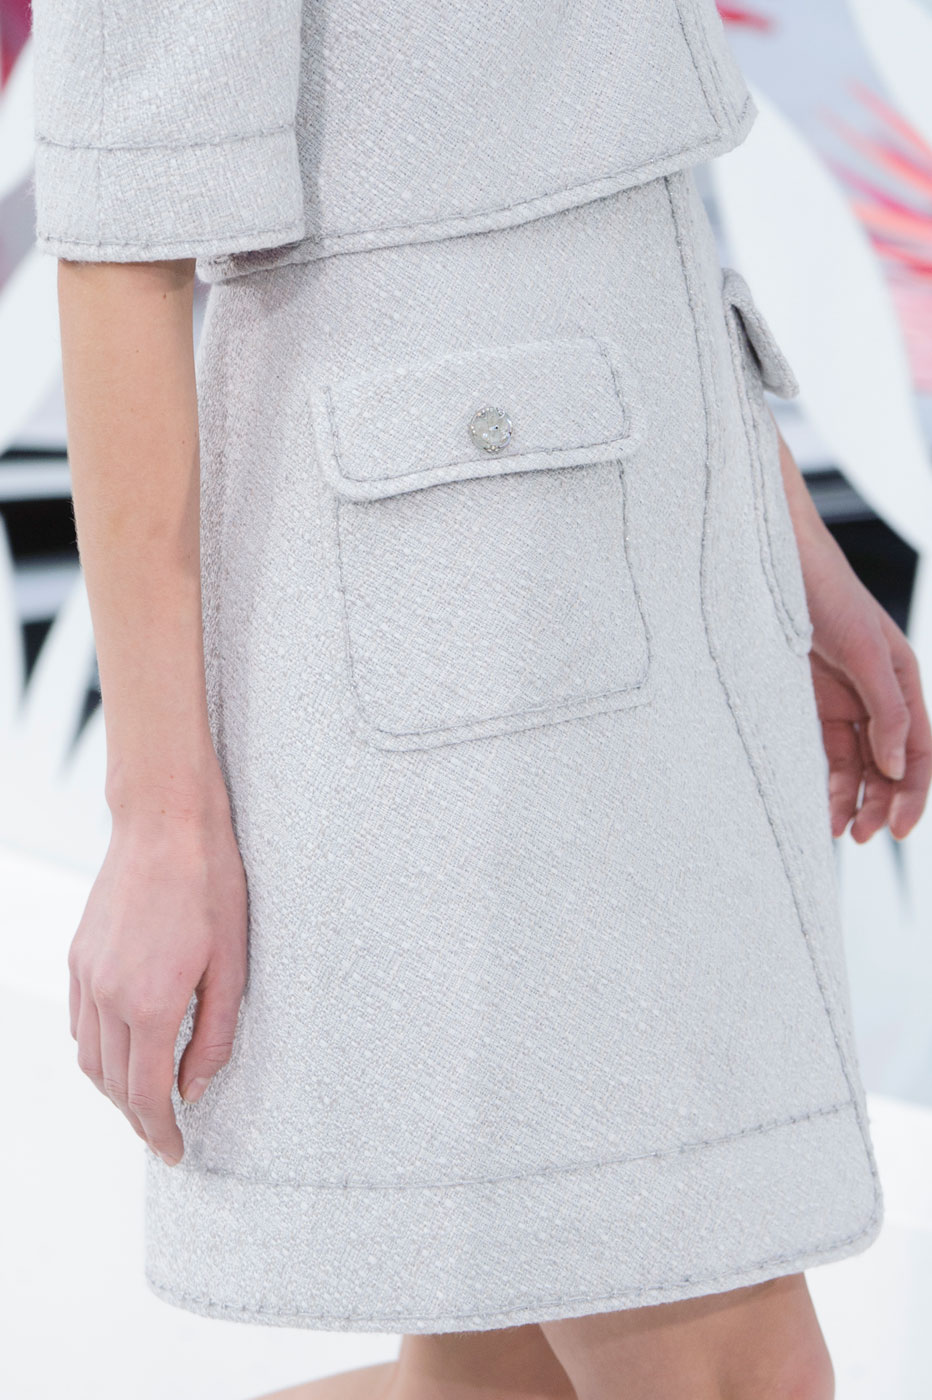 Chanel-fashion-runway-show-close-ups-haute-couture-paris-spring-summer-2015-the-impression-013